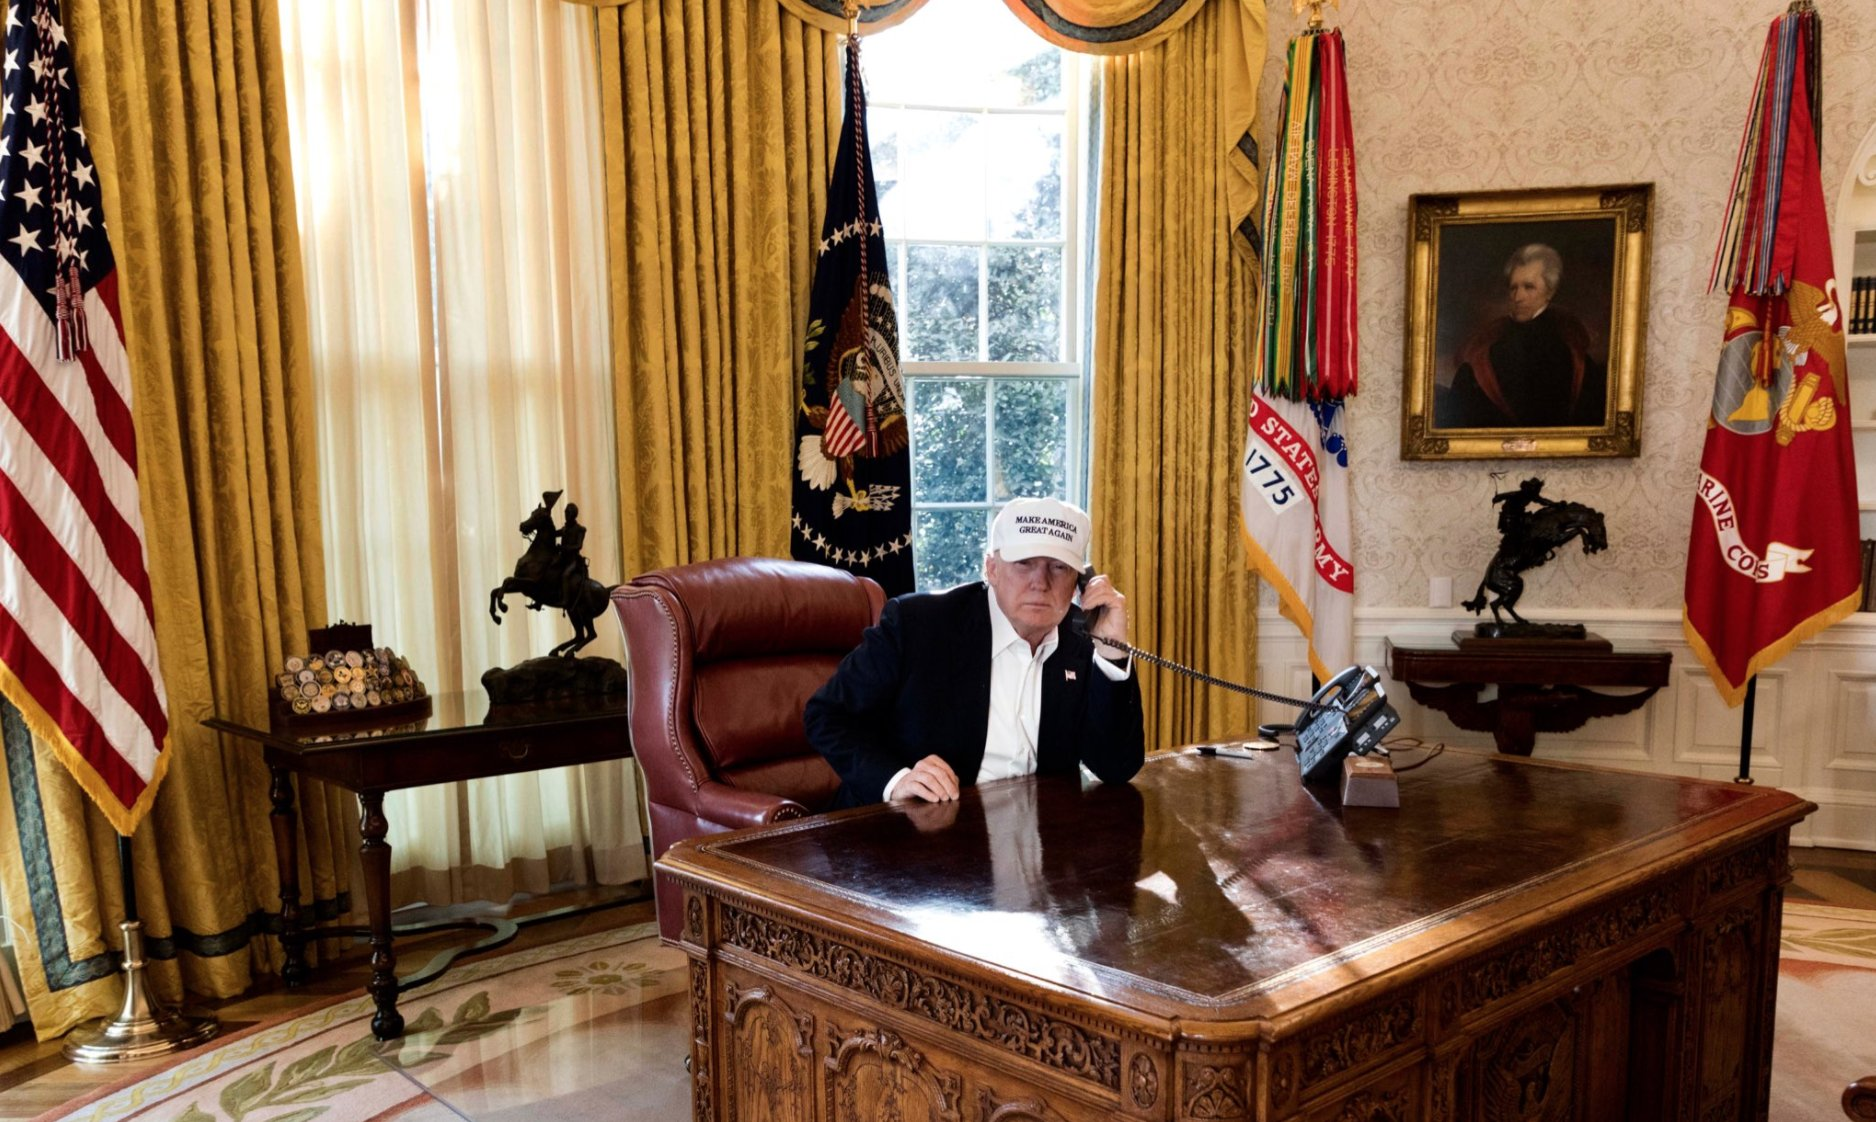 "White House releases hilarious photos to show Trump is ""working"" during shutdown. https://t.co/jfRBo0O5xv https://t.co/42xtaYw3li"